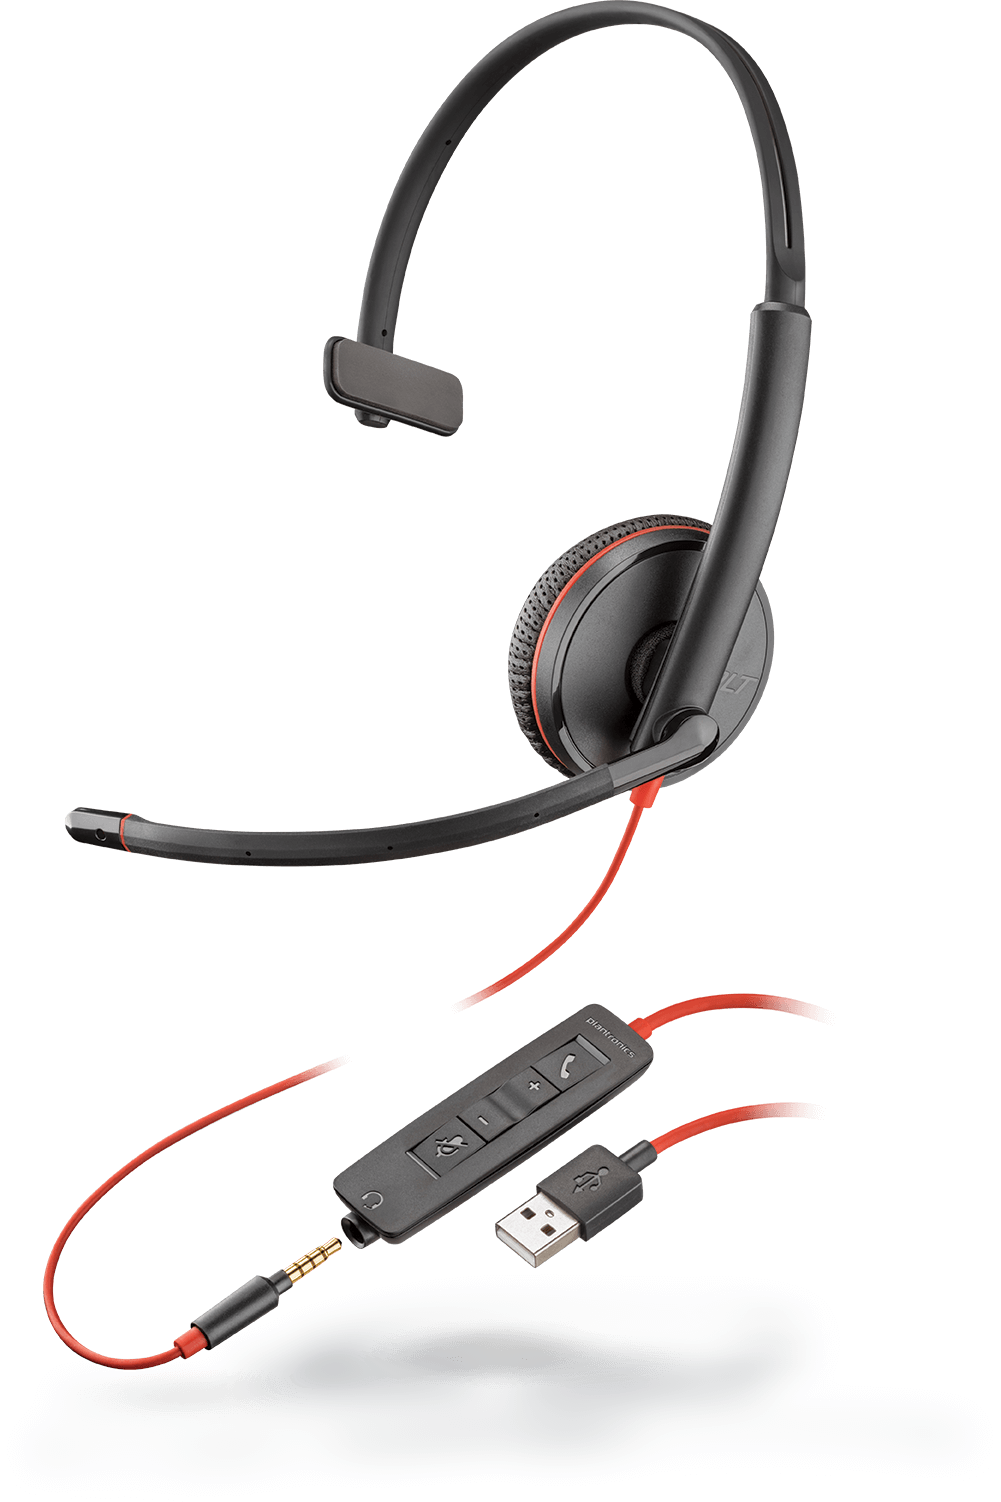 Earbud clip retractable. Plantronics products headsets headphones